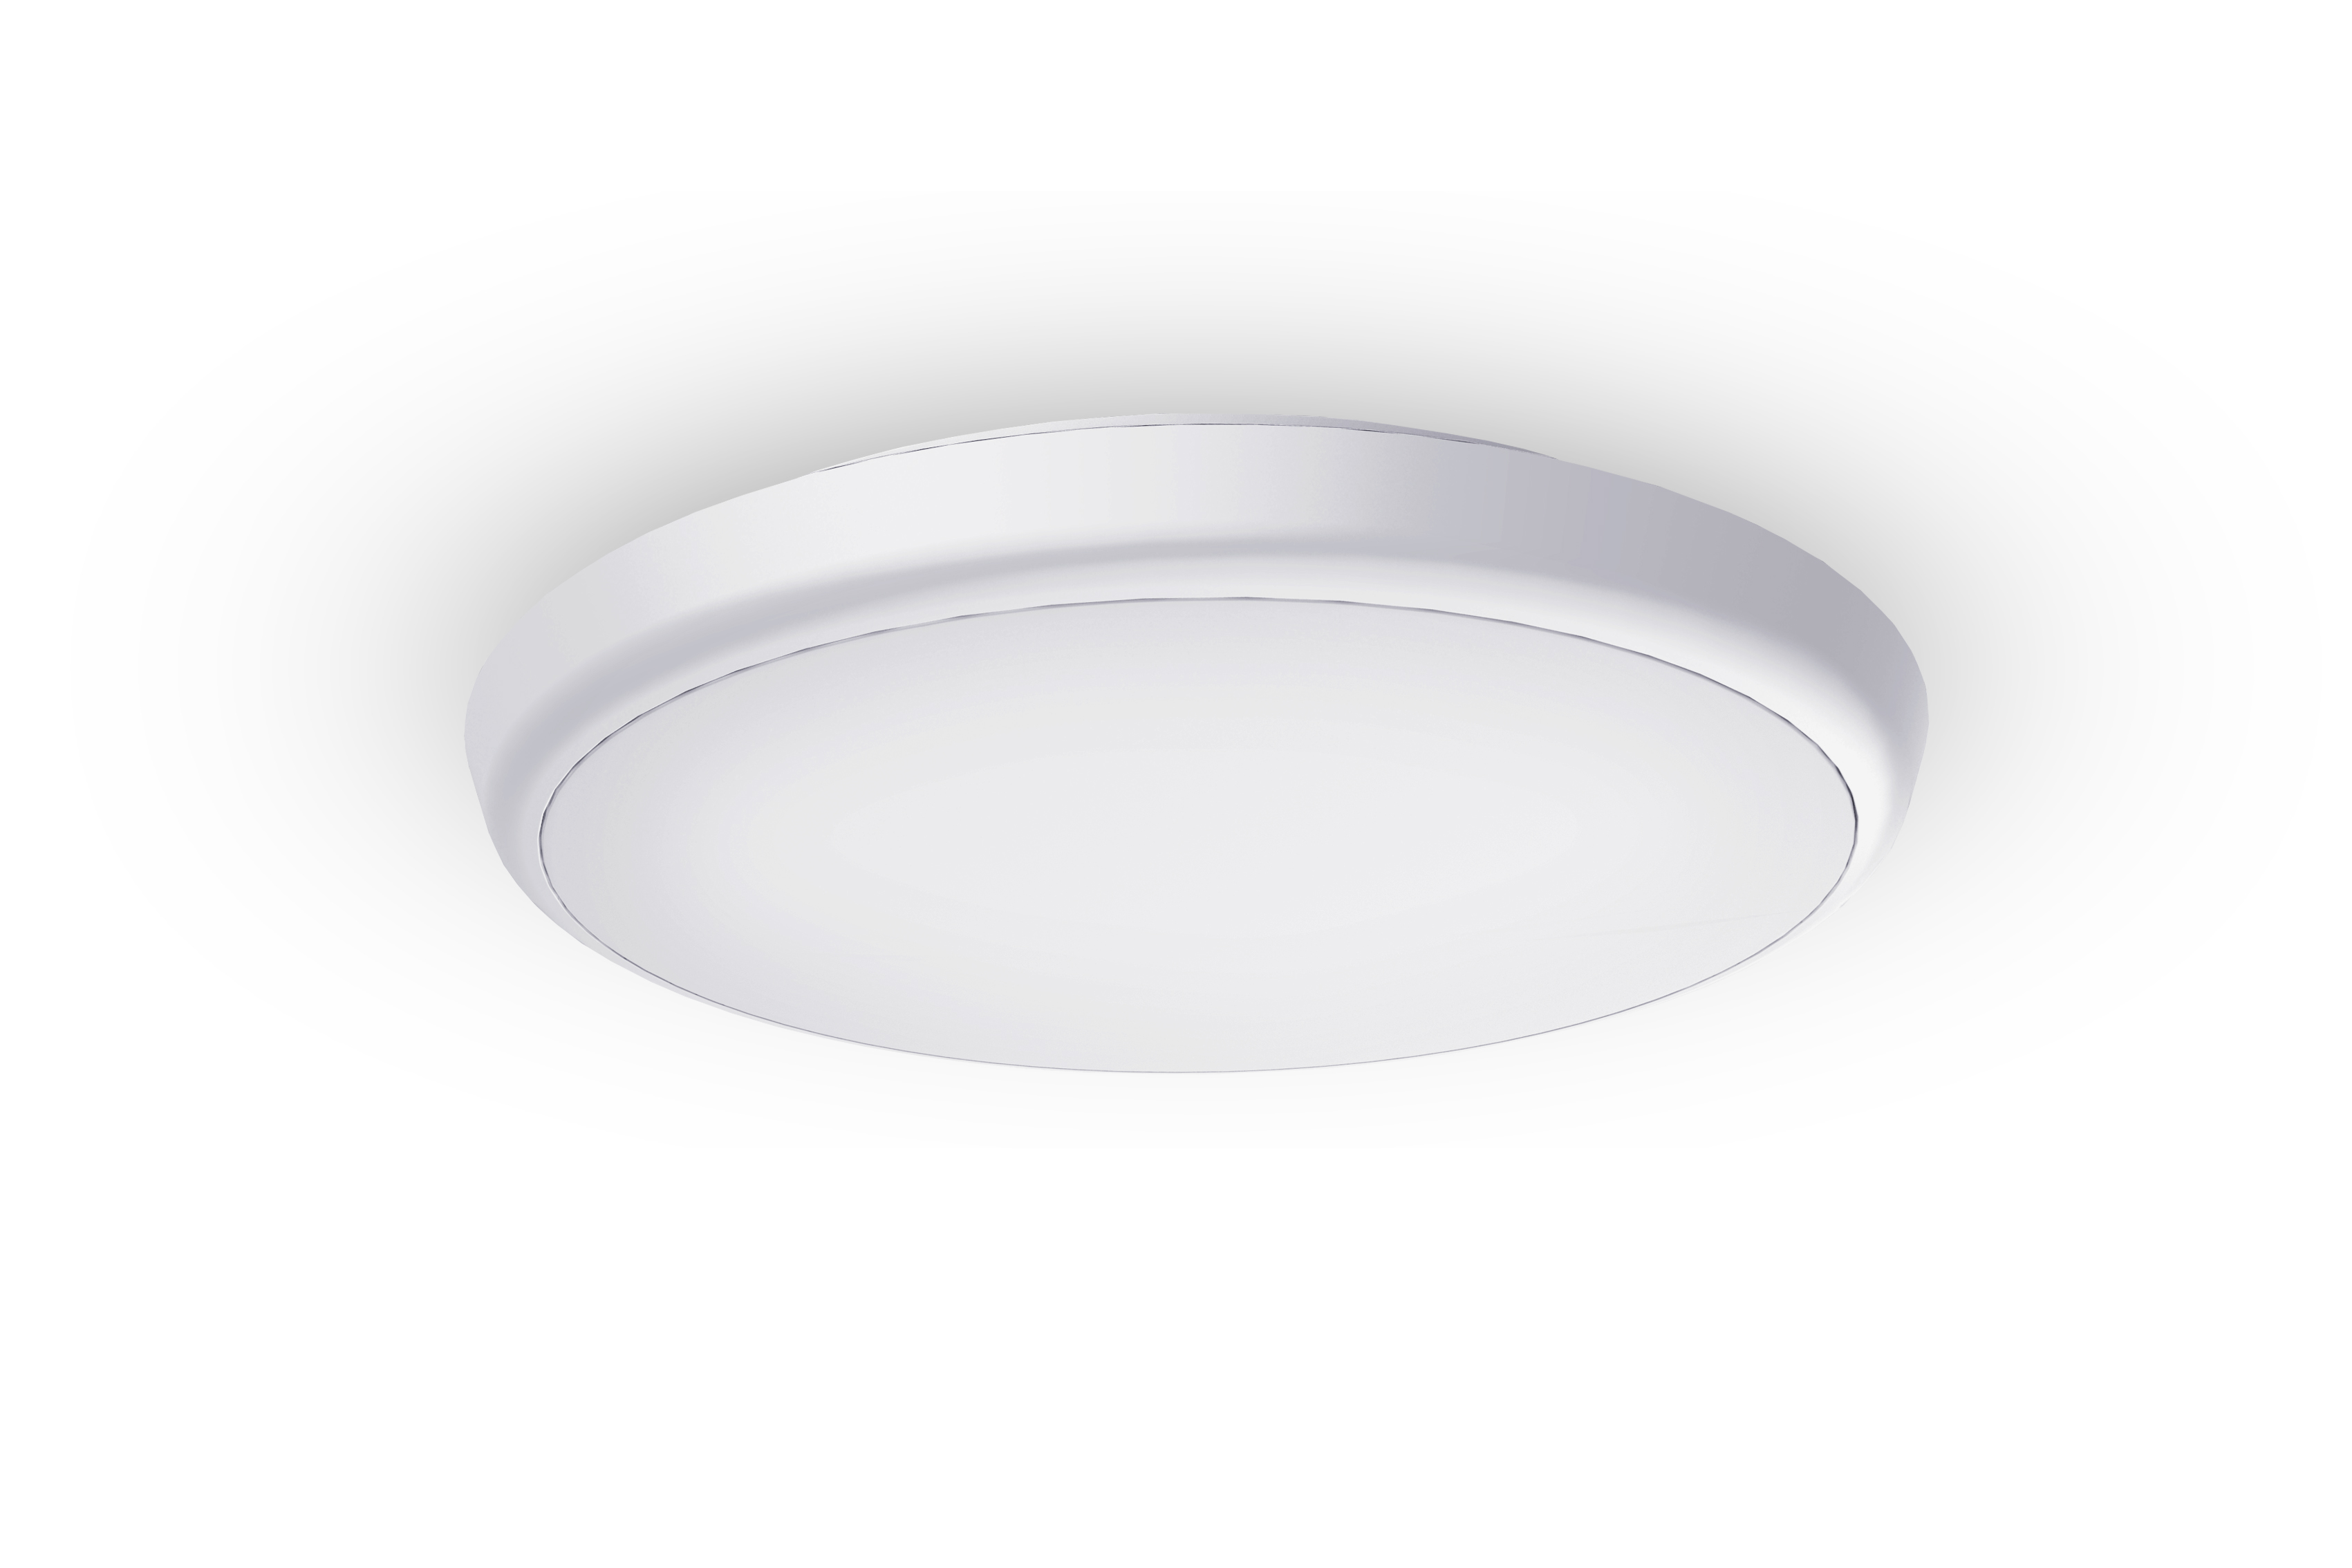 Dimmable led ceiling lights good market feedback upshine lighting dimmable led ceiling lights good market feedback aloadofball